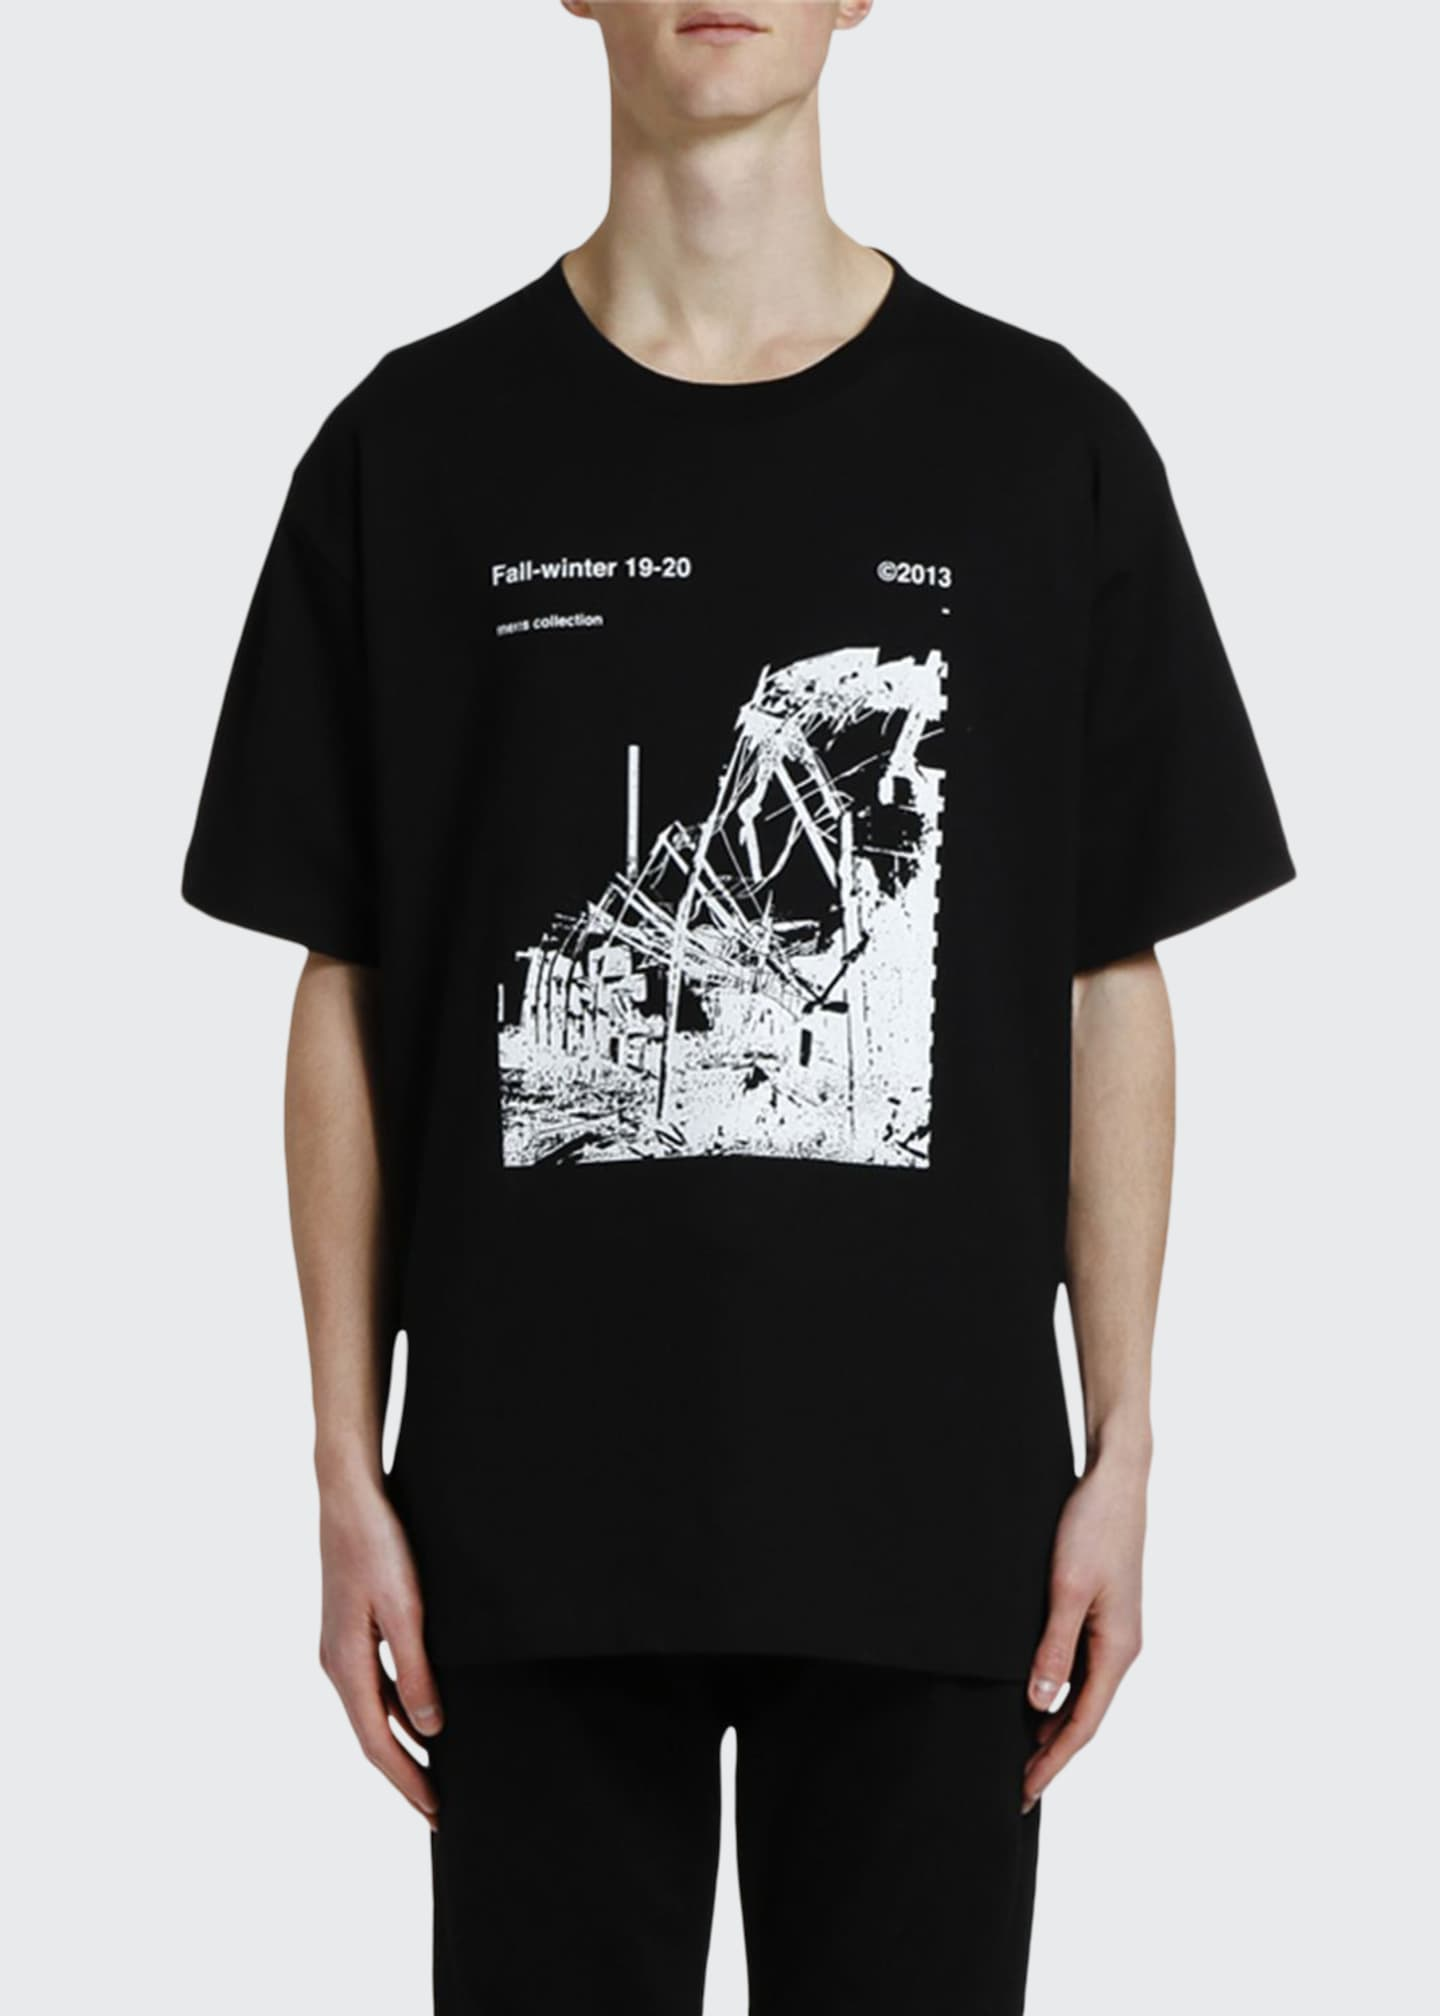 Off-White Men's Ruined Factory Oversized Graphic T-Shirt